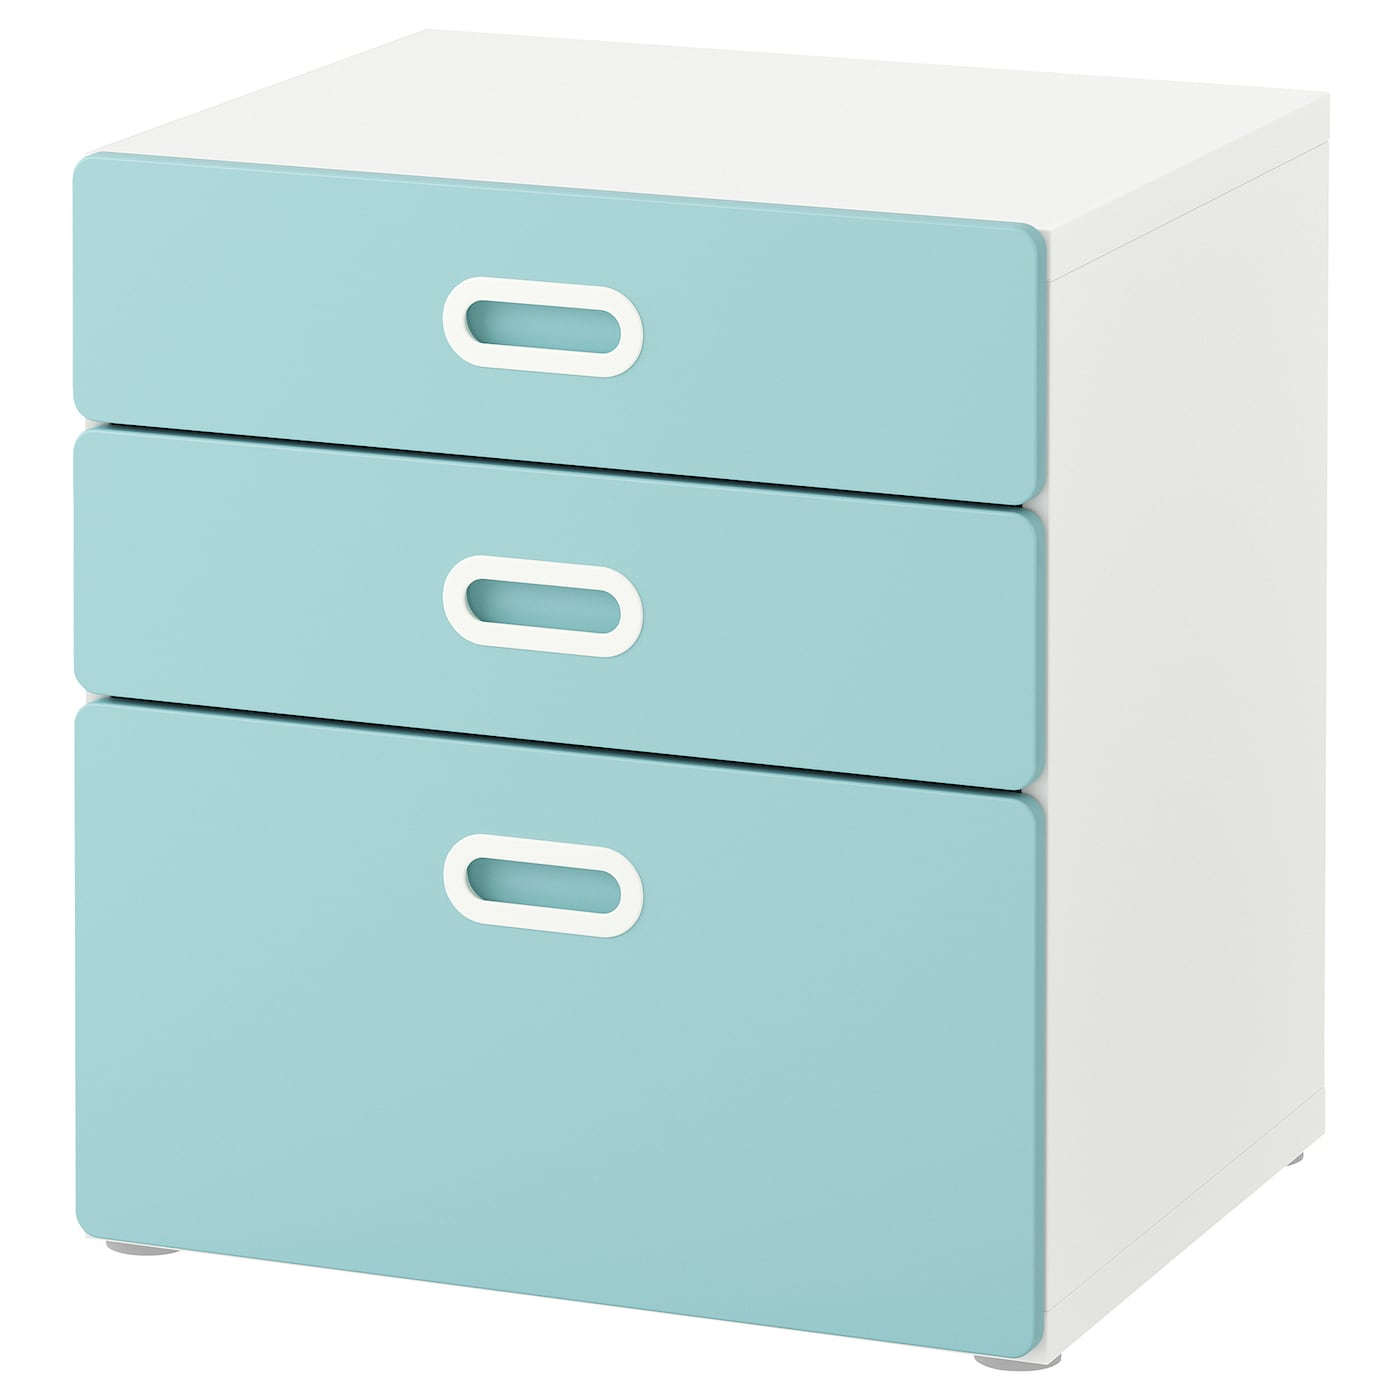 IKEA FRITIDS/STUVA chest of 3 drawers Can stand on the floor or be hung on the wall.